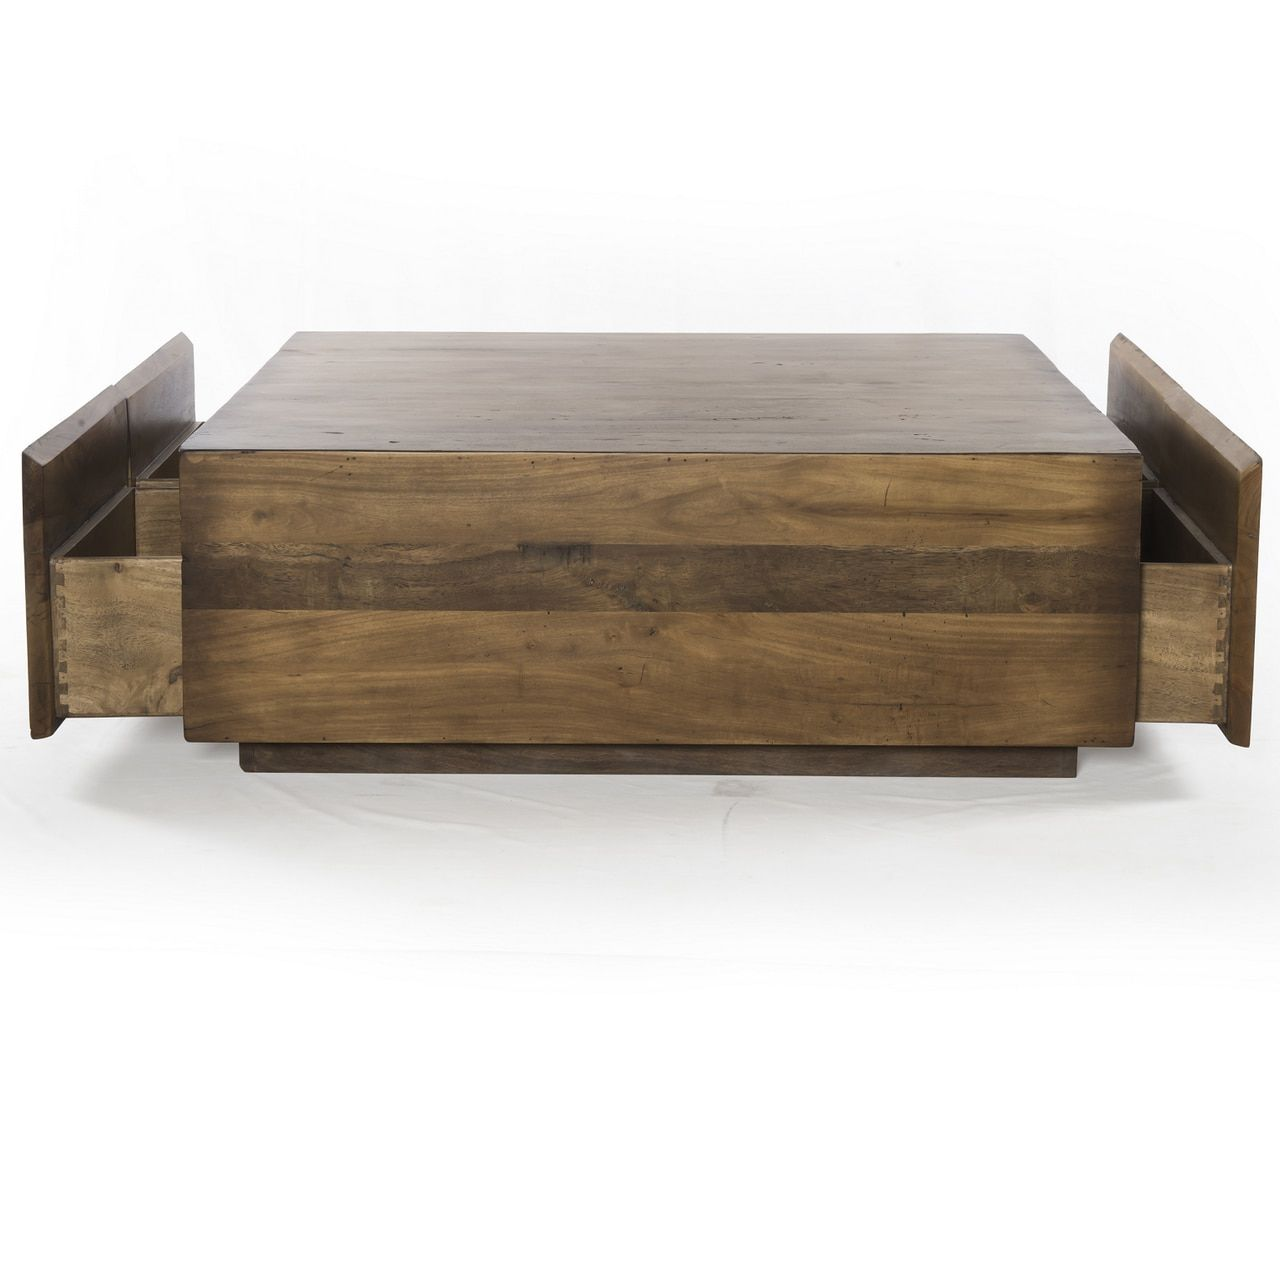 Duncan Reclaimed Wood Square Storage Coffee Table Coffee Table Wood Wood Coffee Table Storage Square Wood Coffee Table [ 1280 x 1280 Pixel ]